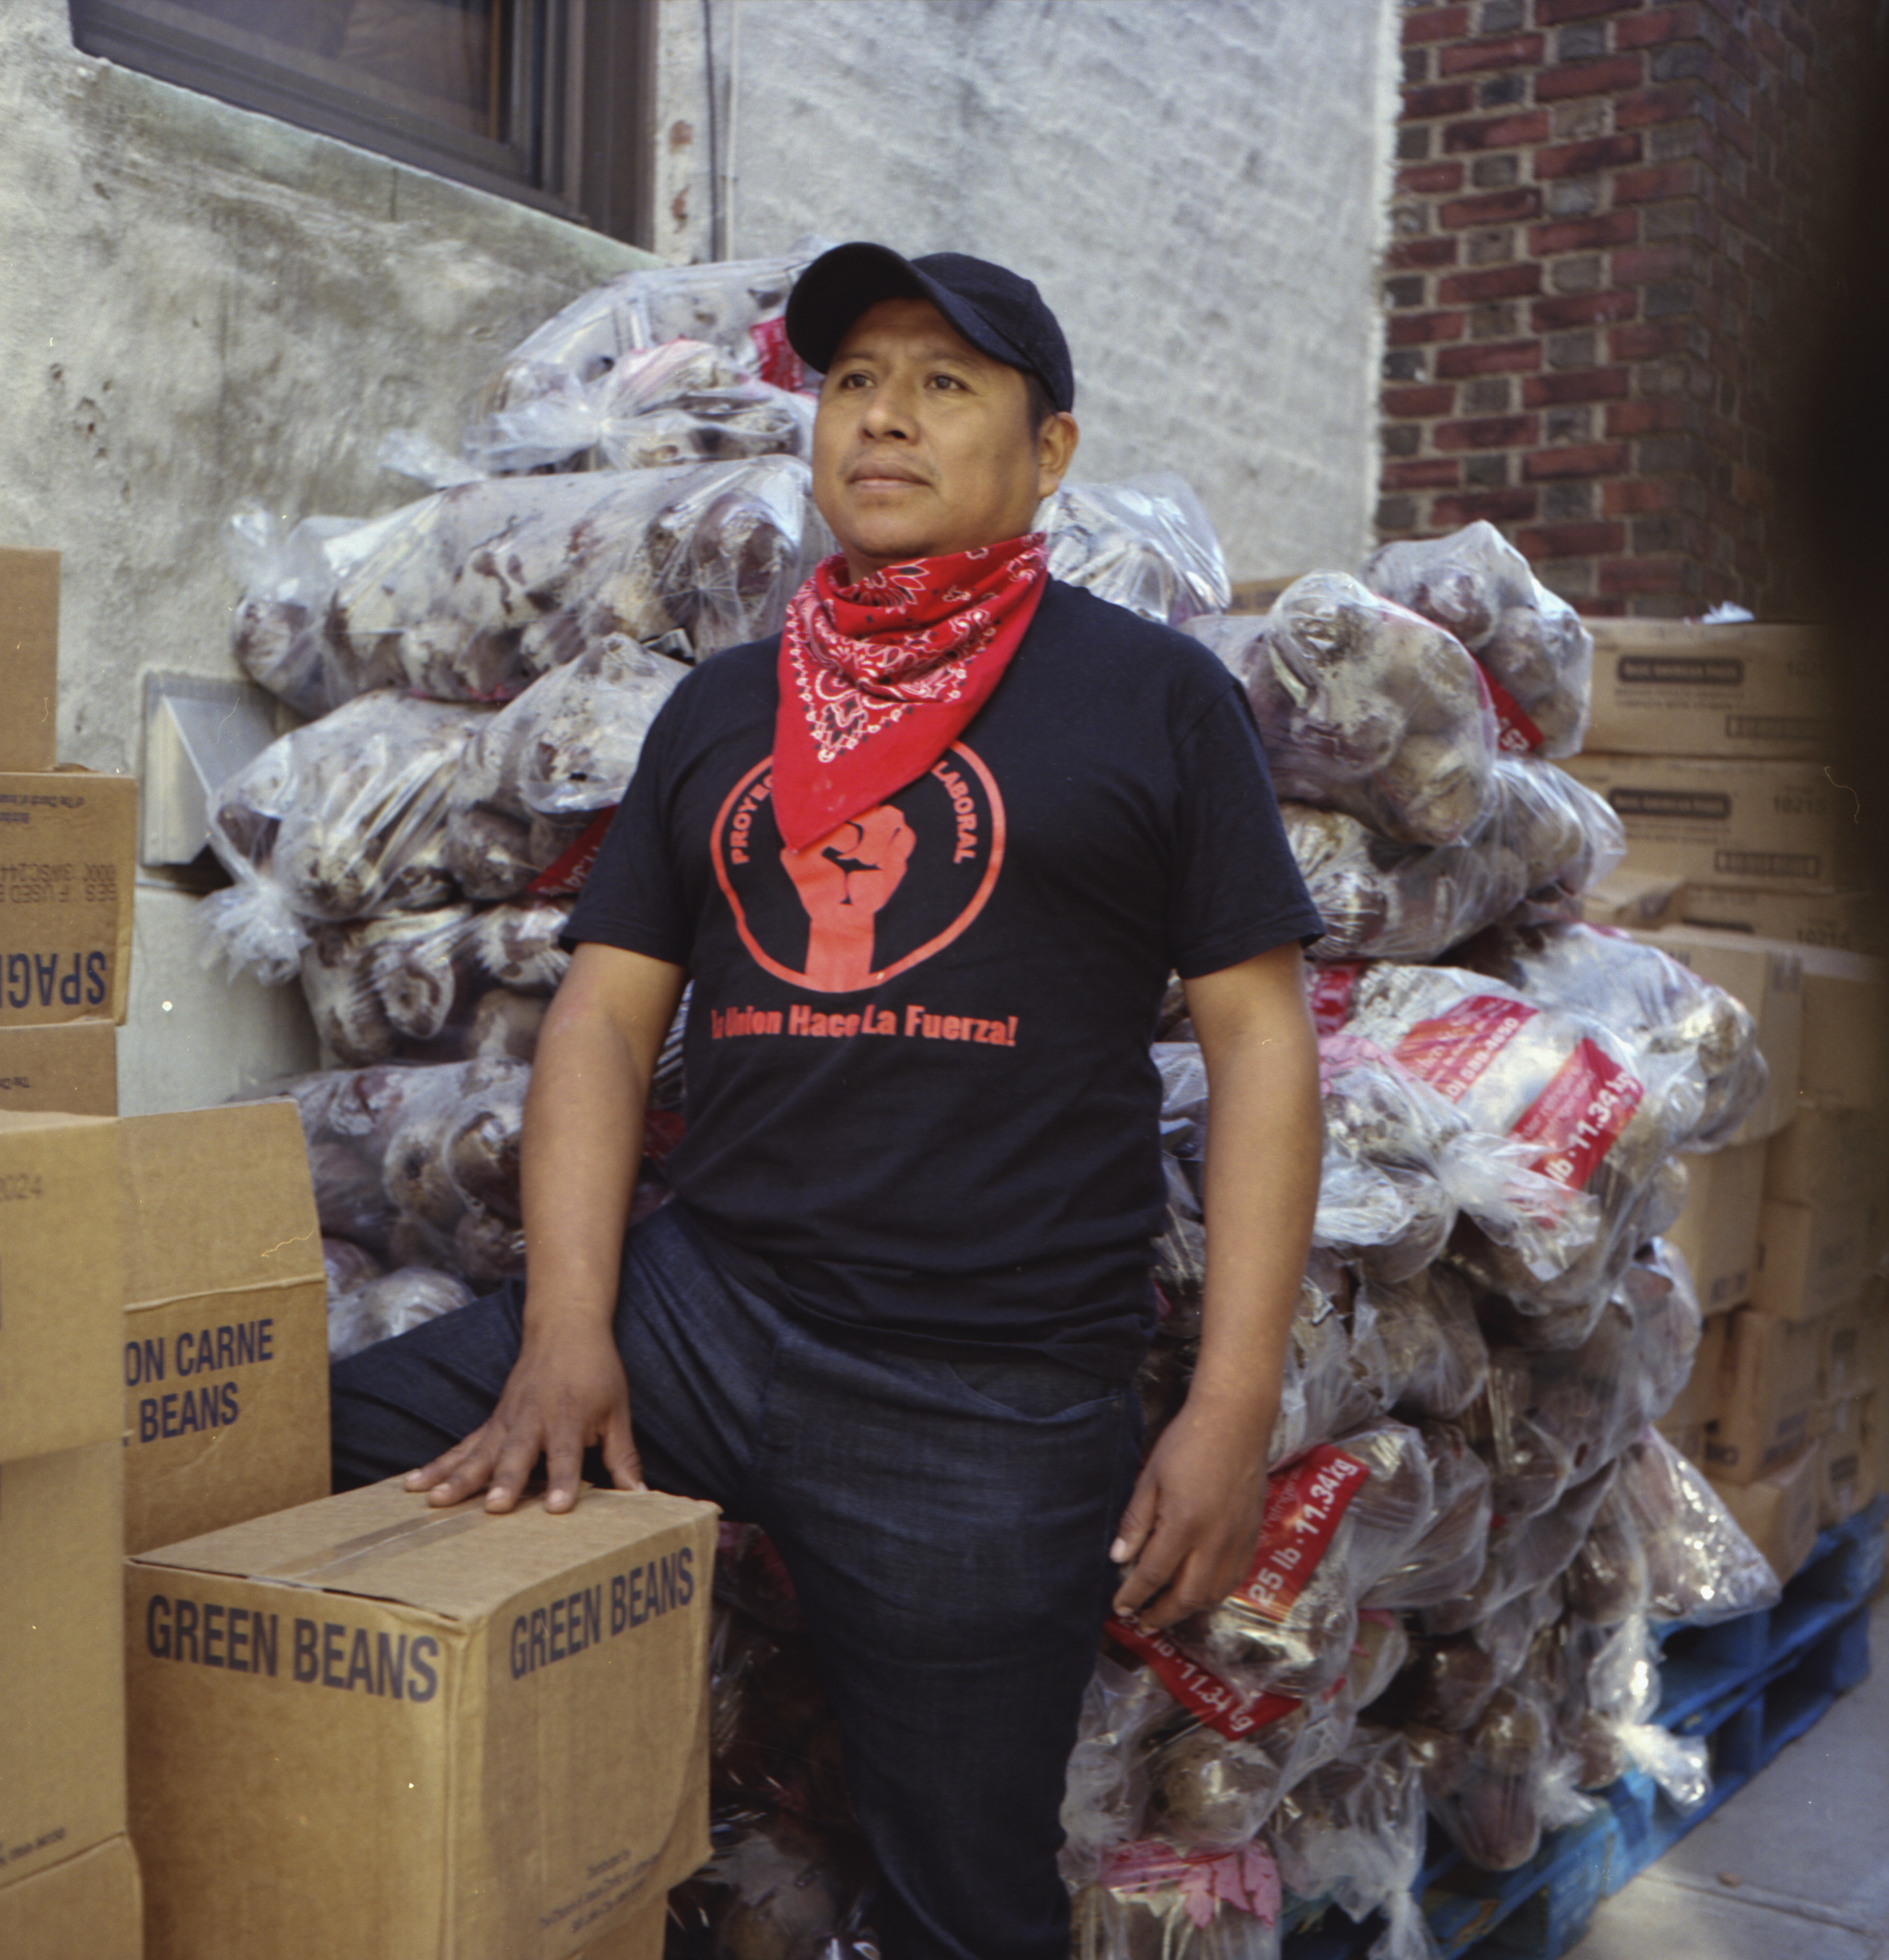 A man with a bandana around his neck in front of a box of green beans and piles of food